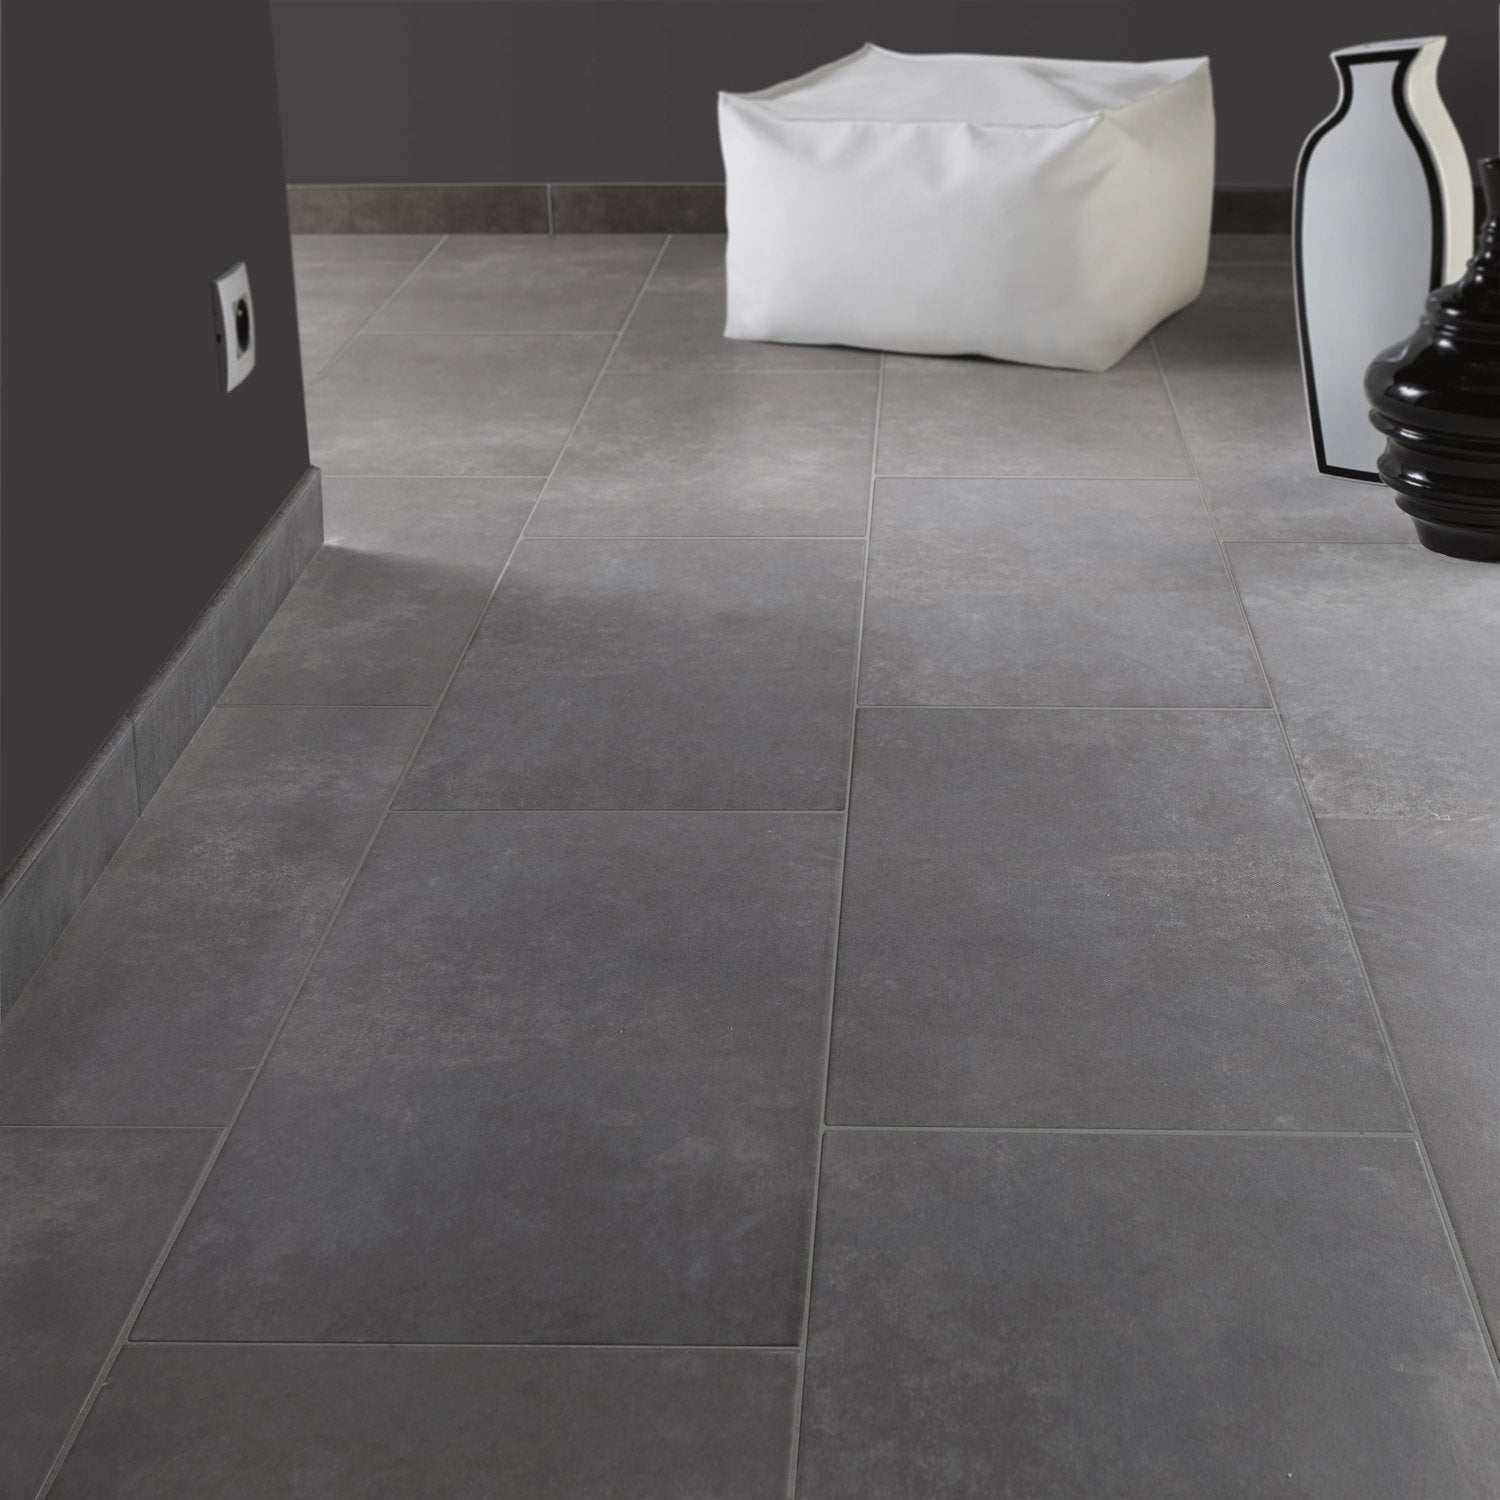 Carrelage int rieur soho en gr s c rame teint masse for Carrelage sol gris anthracite